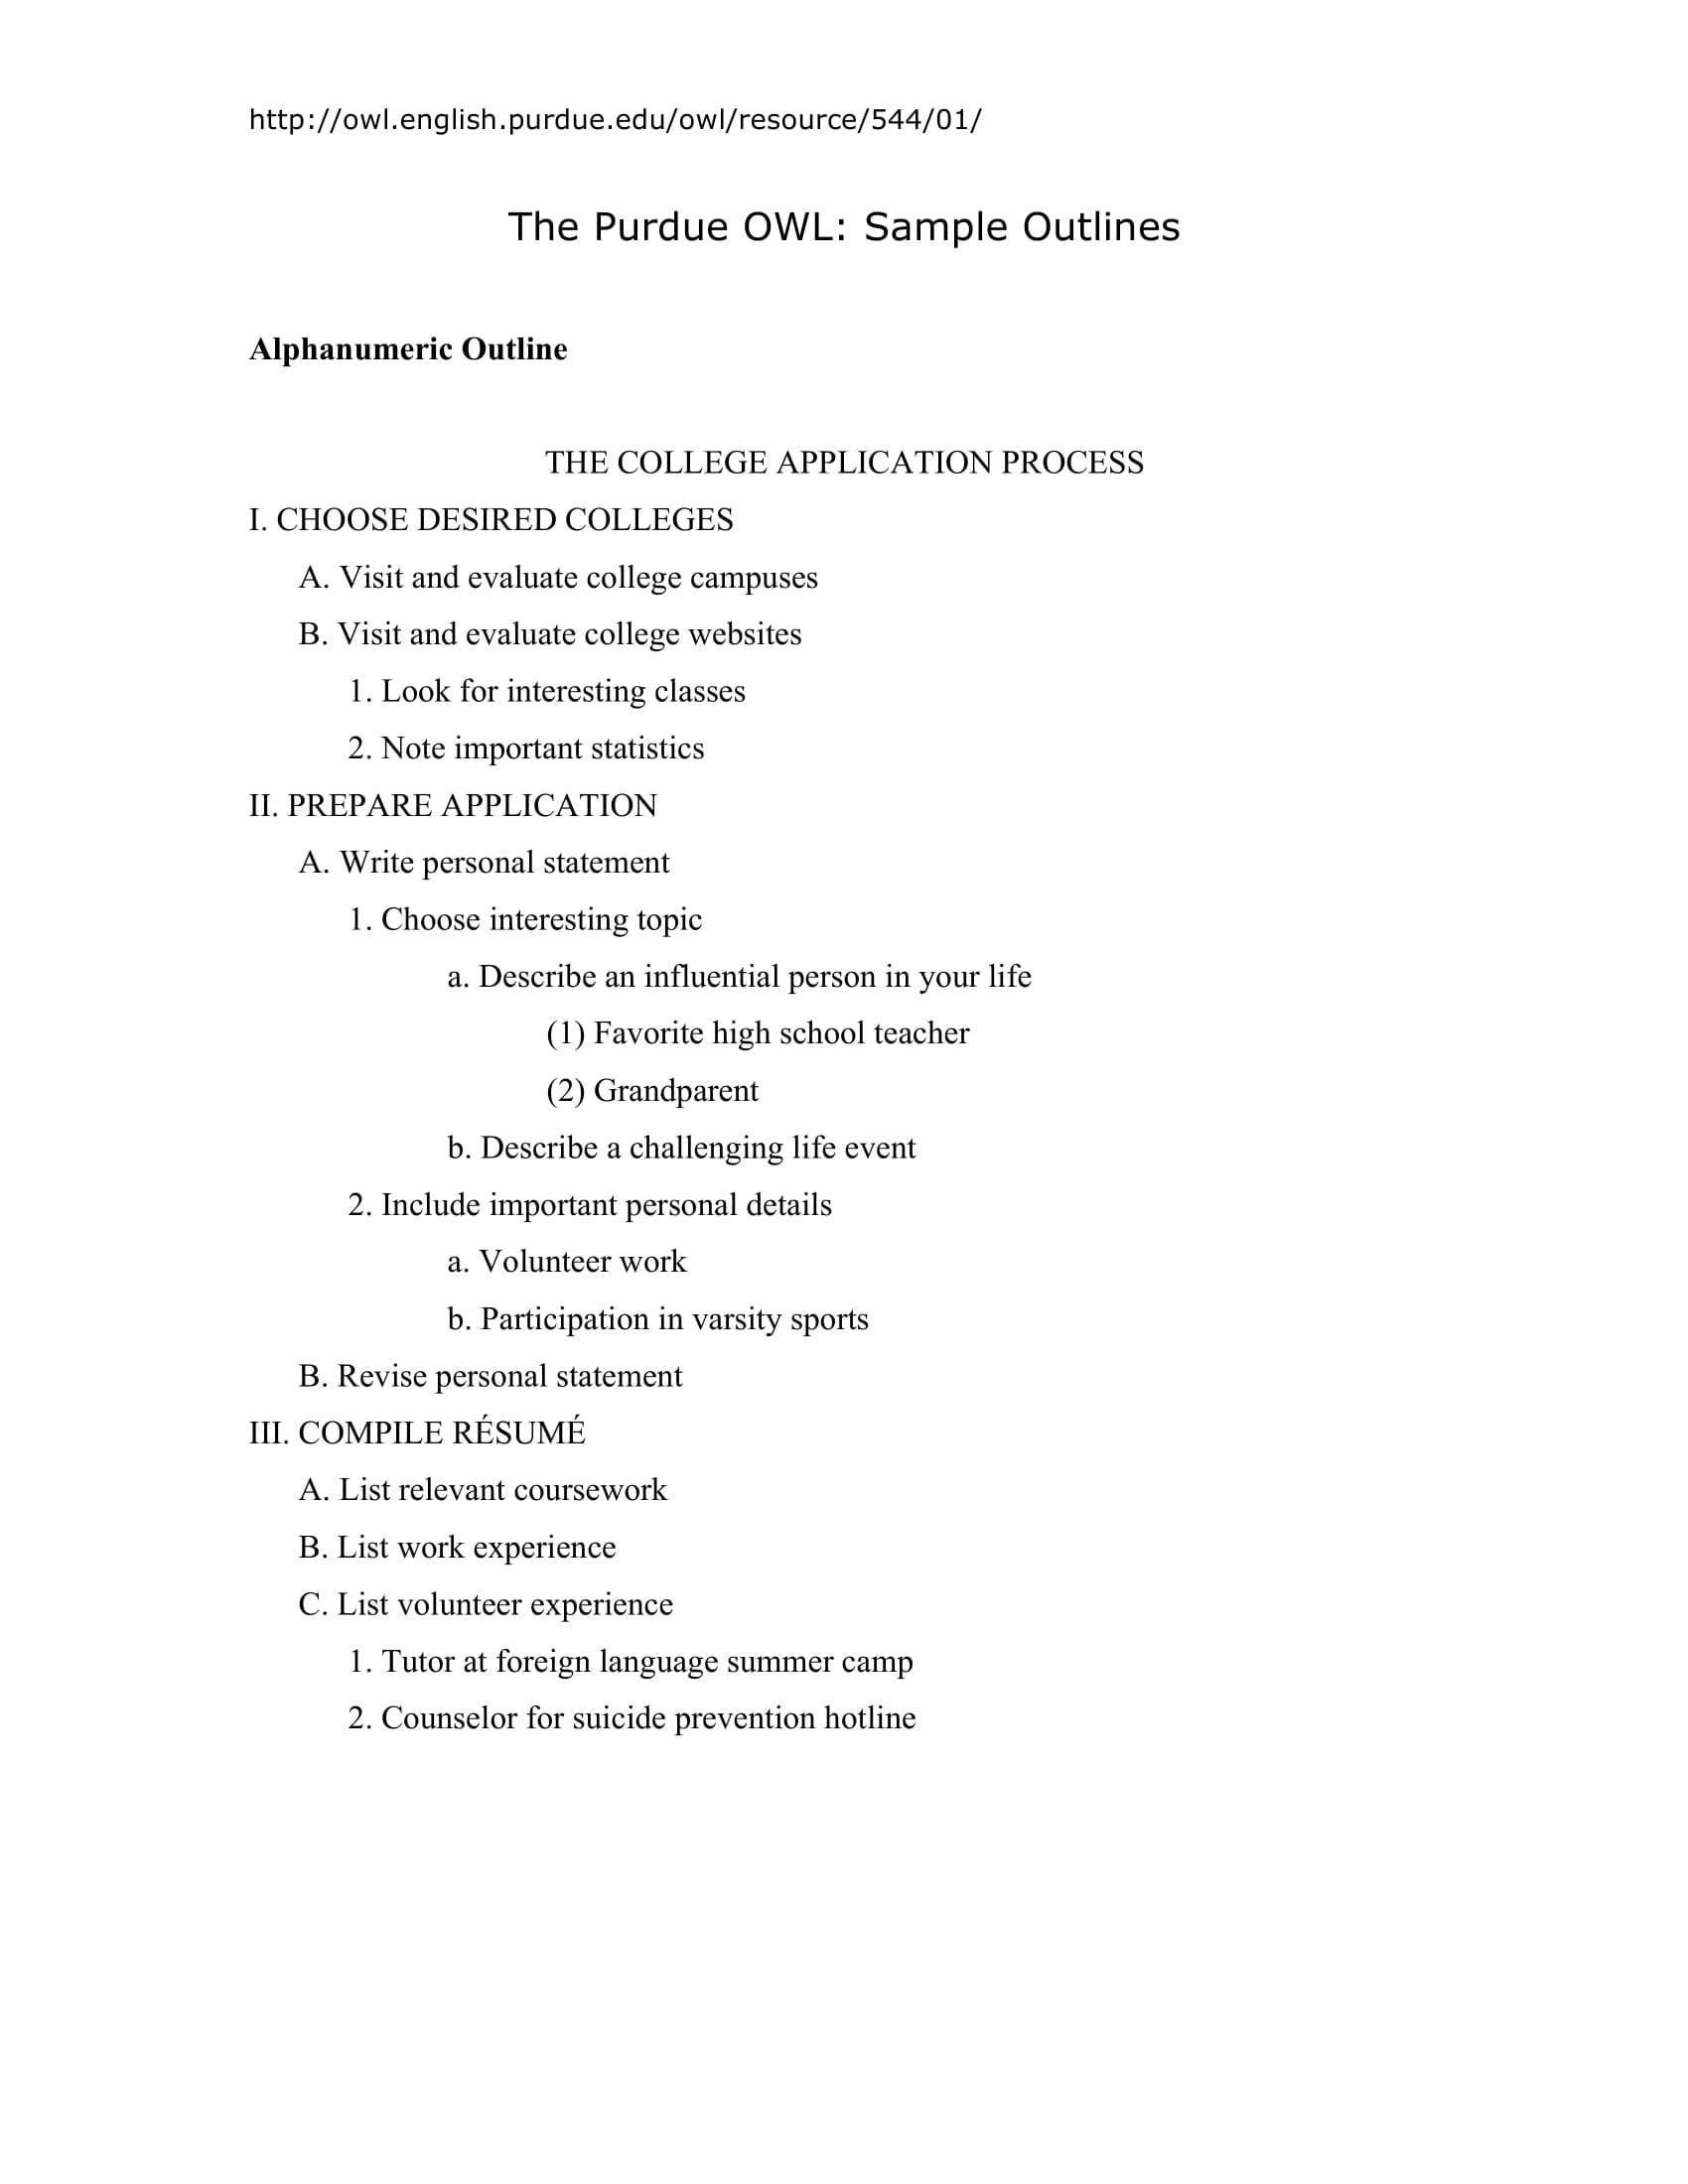 Outline Sample Apa Barcafontanacountryinncom